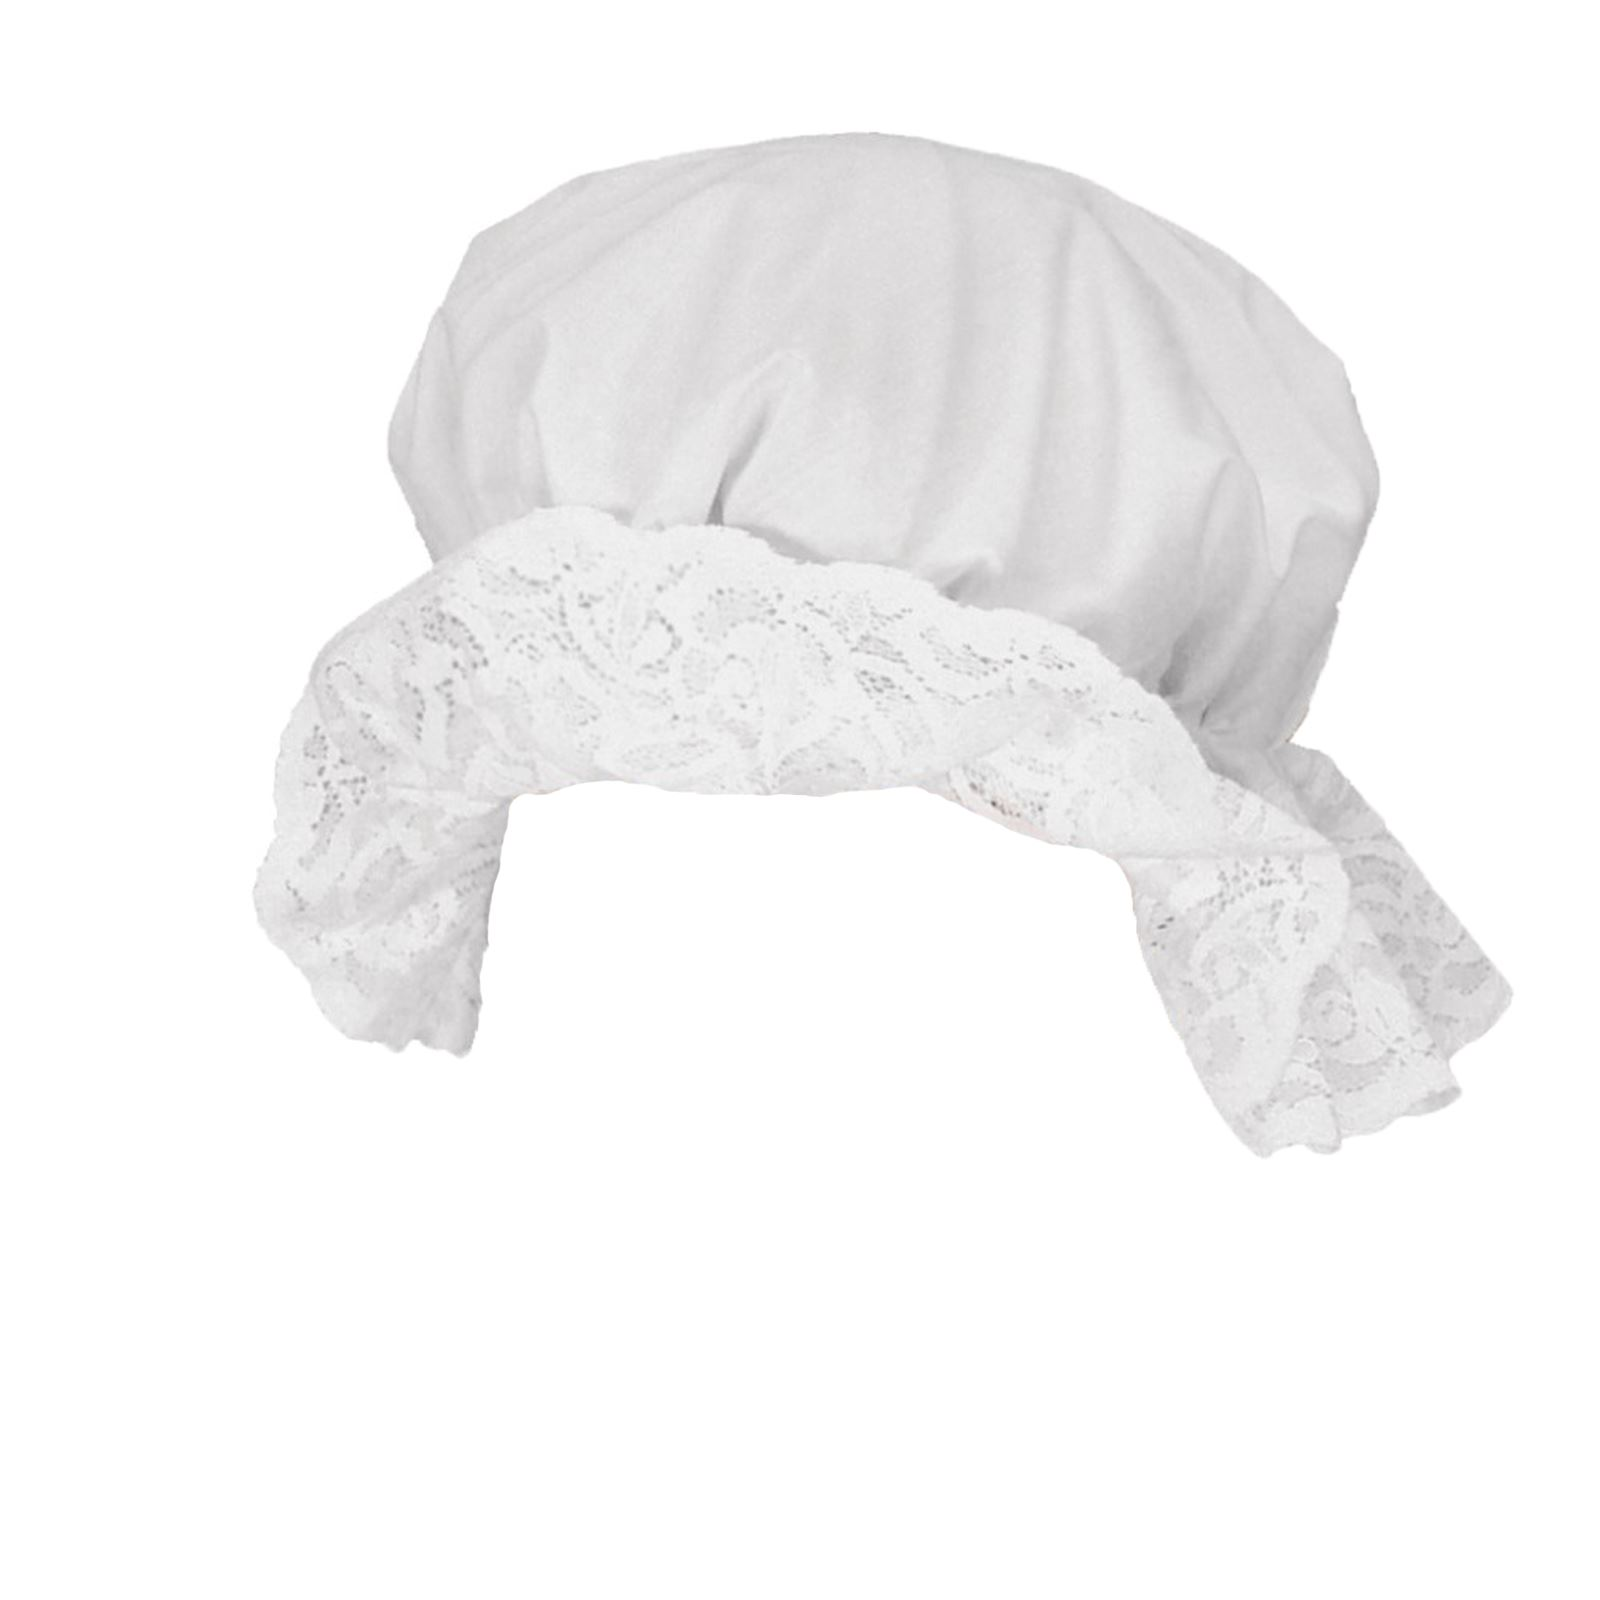 Adults Victorian Maid Servant White Frill Mop Cap Fancy Dress Hat Accessory